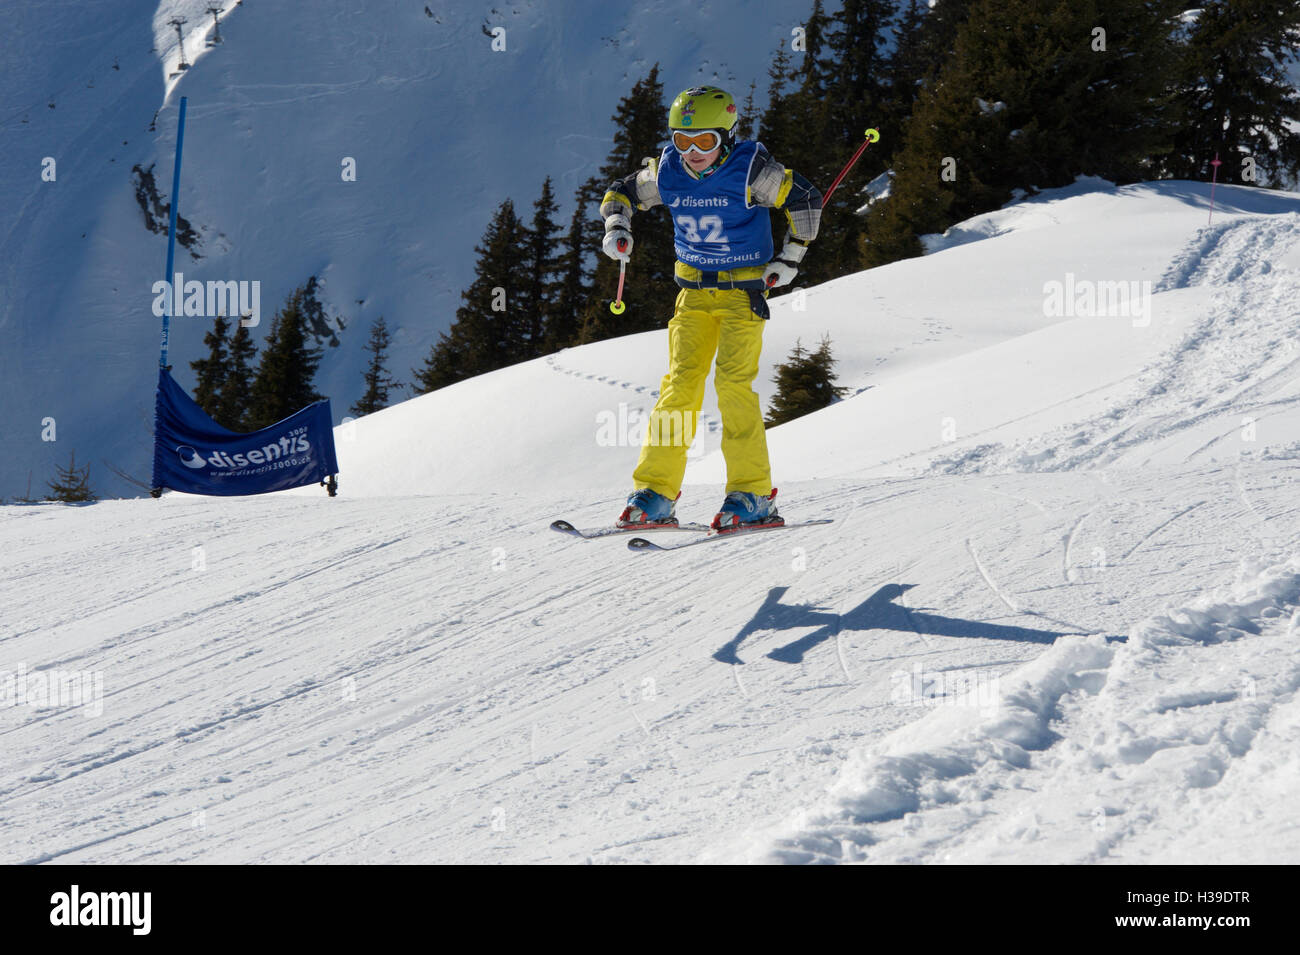 A boy skiing over a piste during a kids race - Stock Image